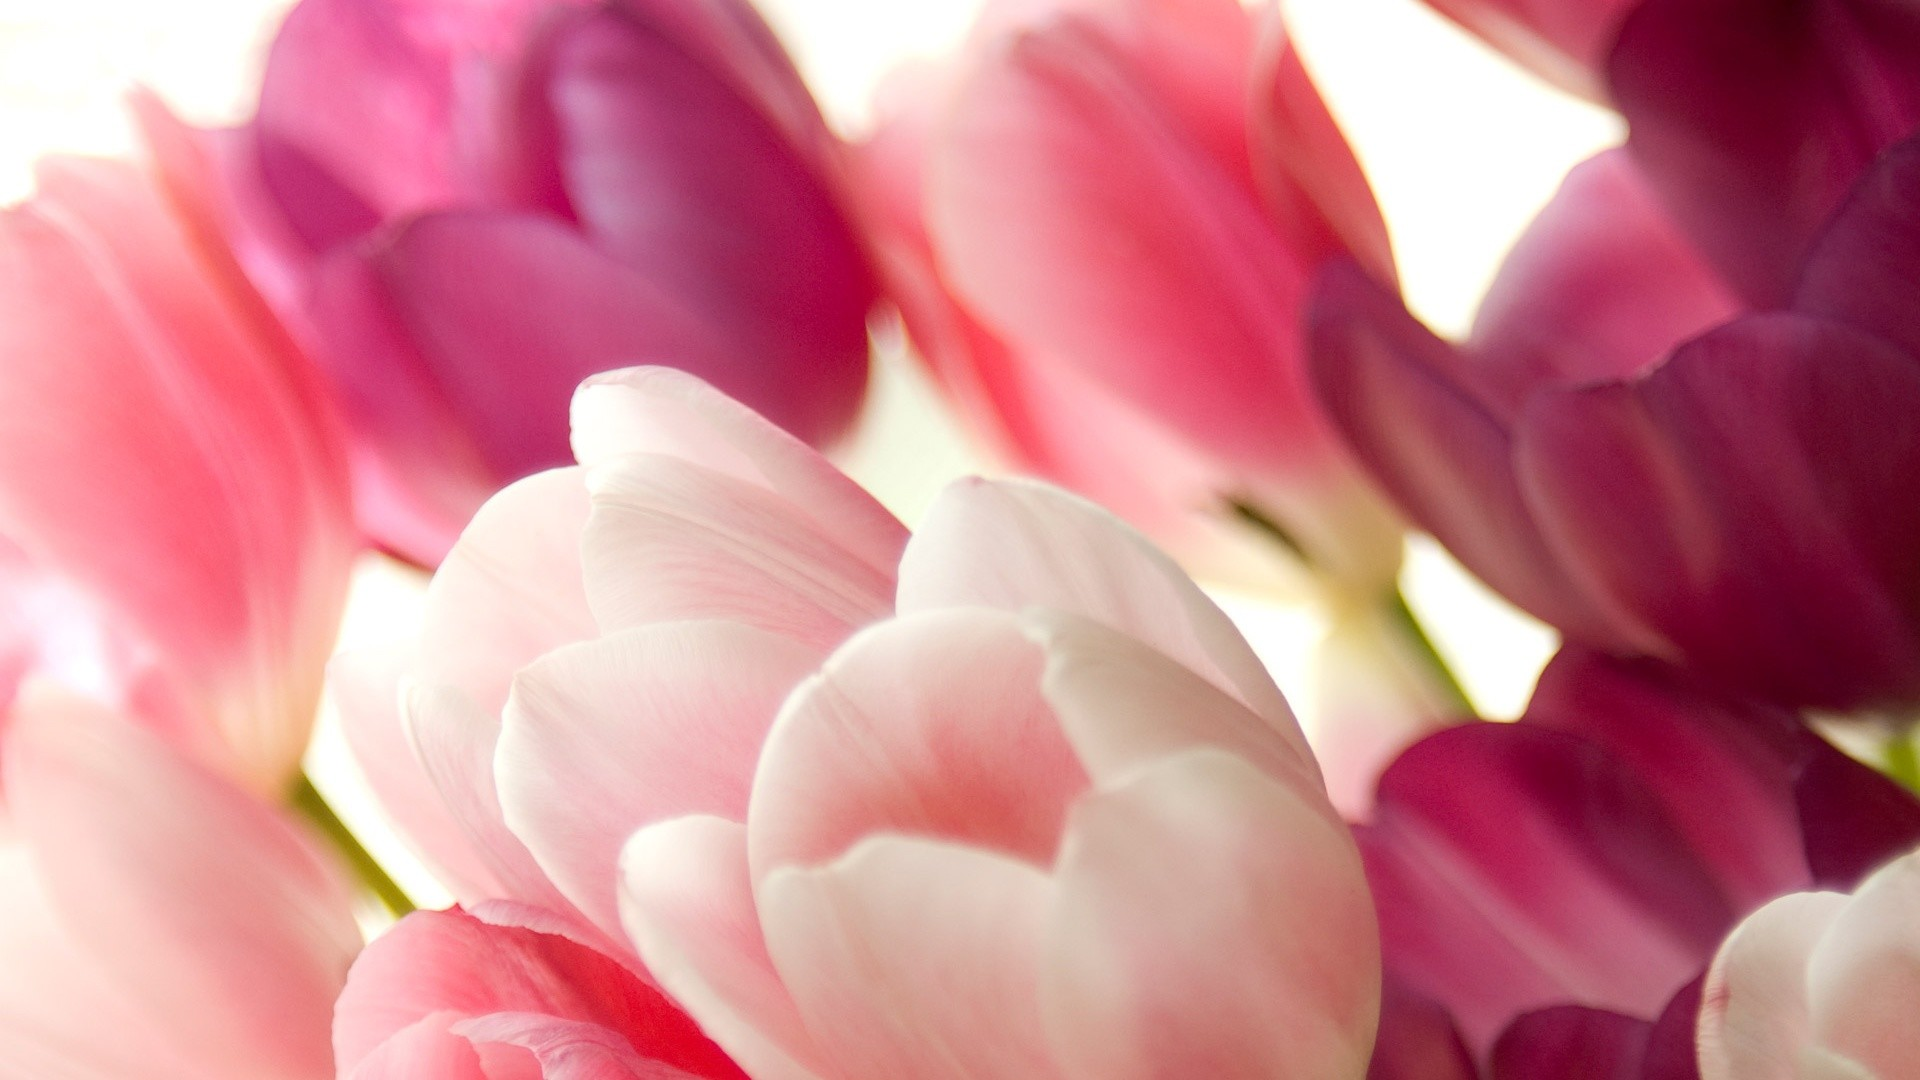 Pink Tulips Wallpapers Wallpaper 1280×1024 Tulips Images Wallpapers (45  Wallpapers) | Adorable Wallpapers | Desktop | Pinterest | Tulips flowers  and …